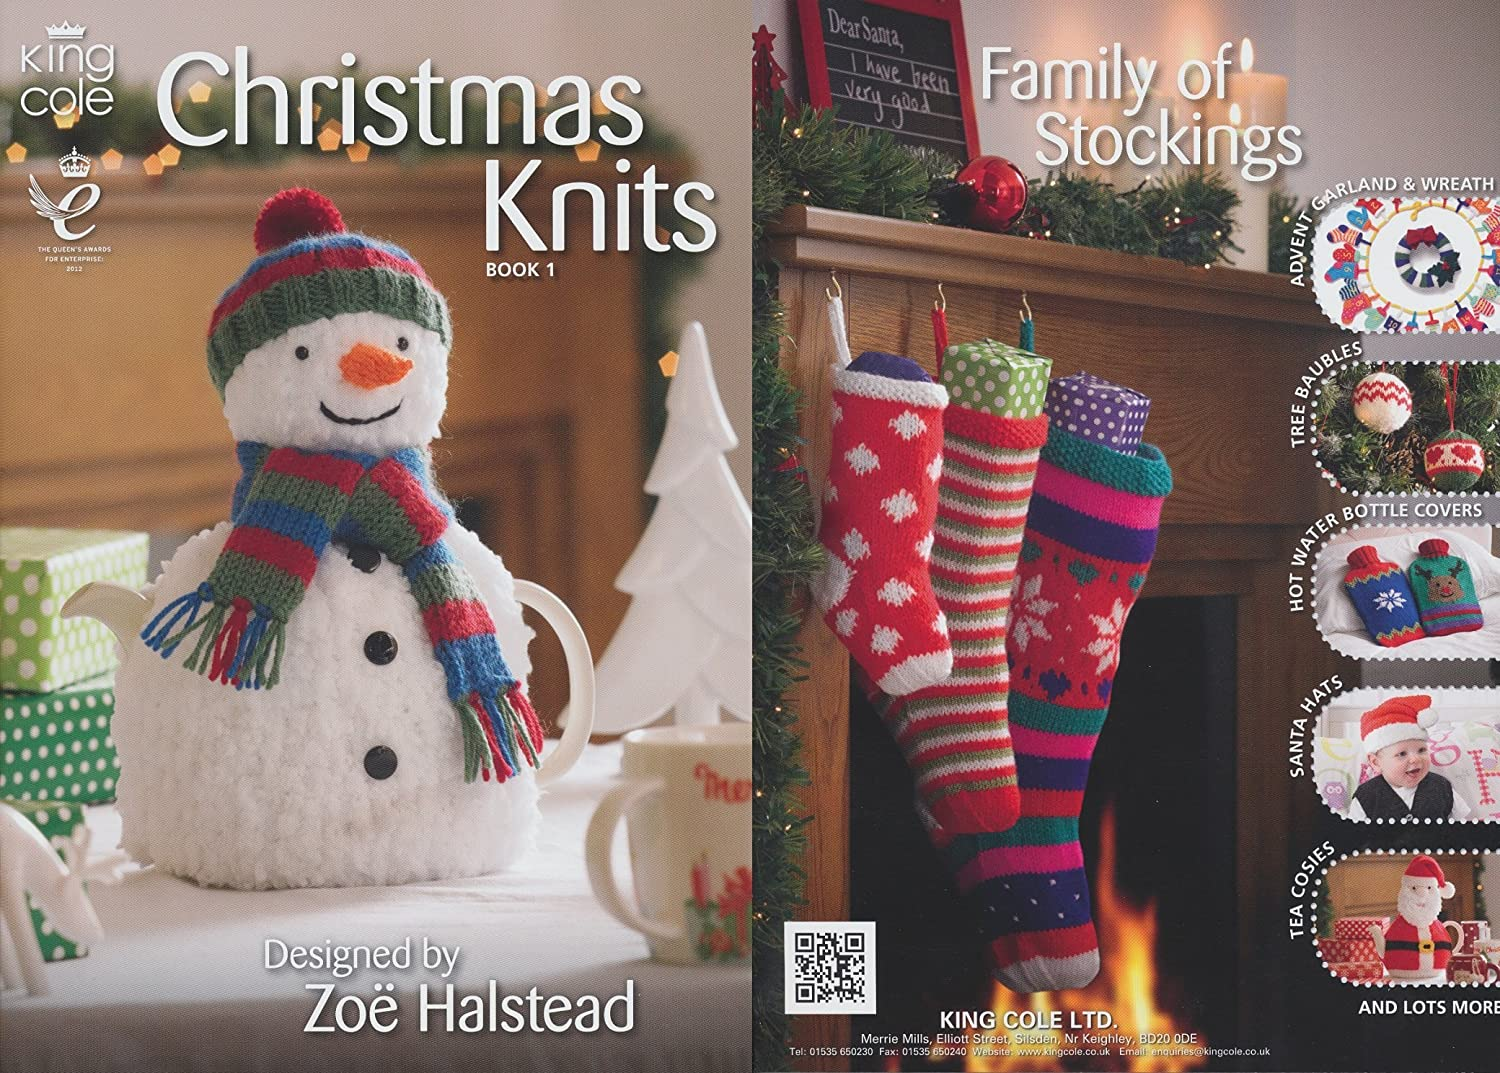 King Cole Christmas Knits Knitting Book Double Knitting Patterns by ...